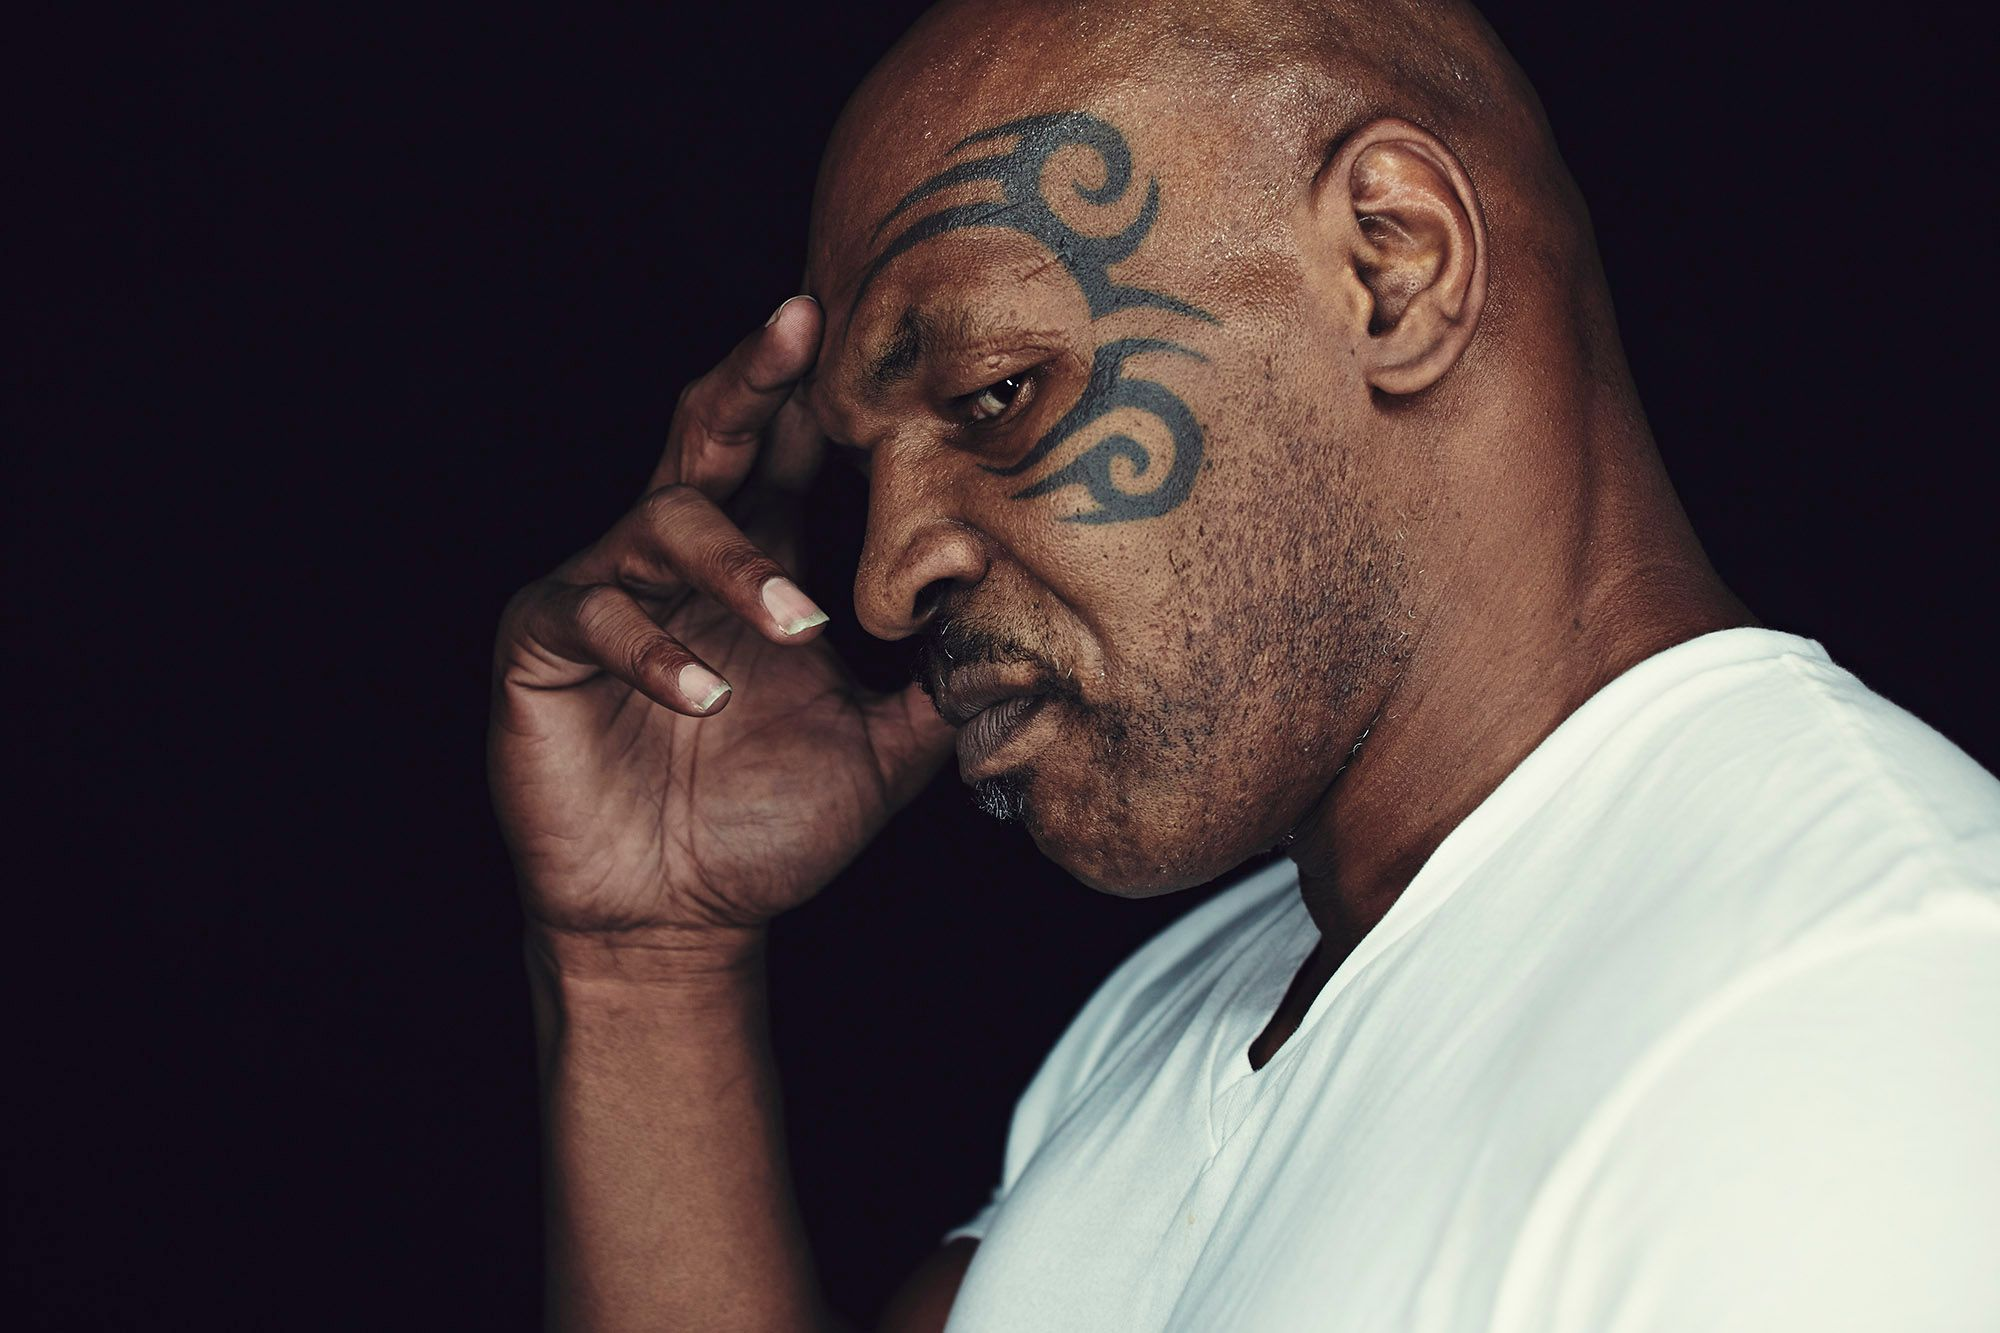 20 Shocking Things You Never Knew About Mike Tyson